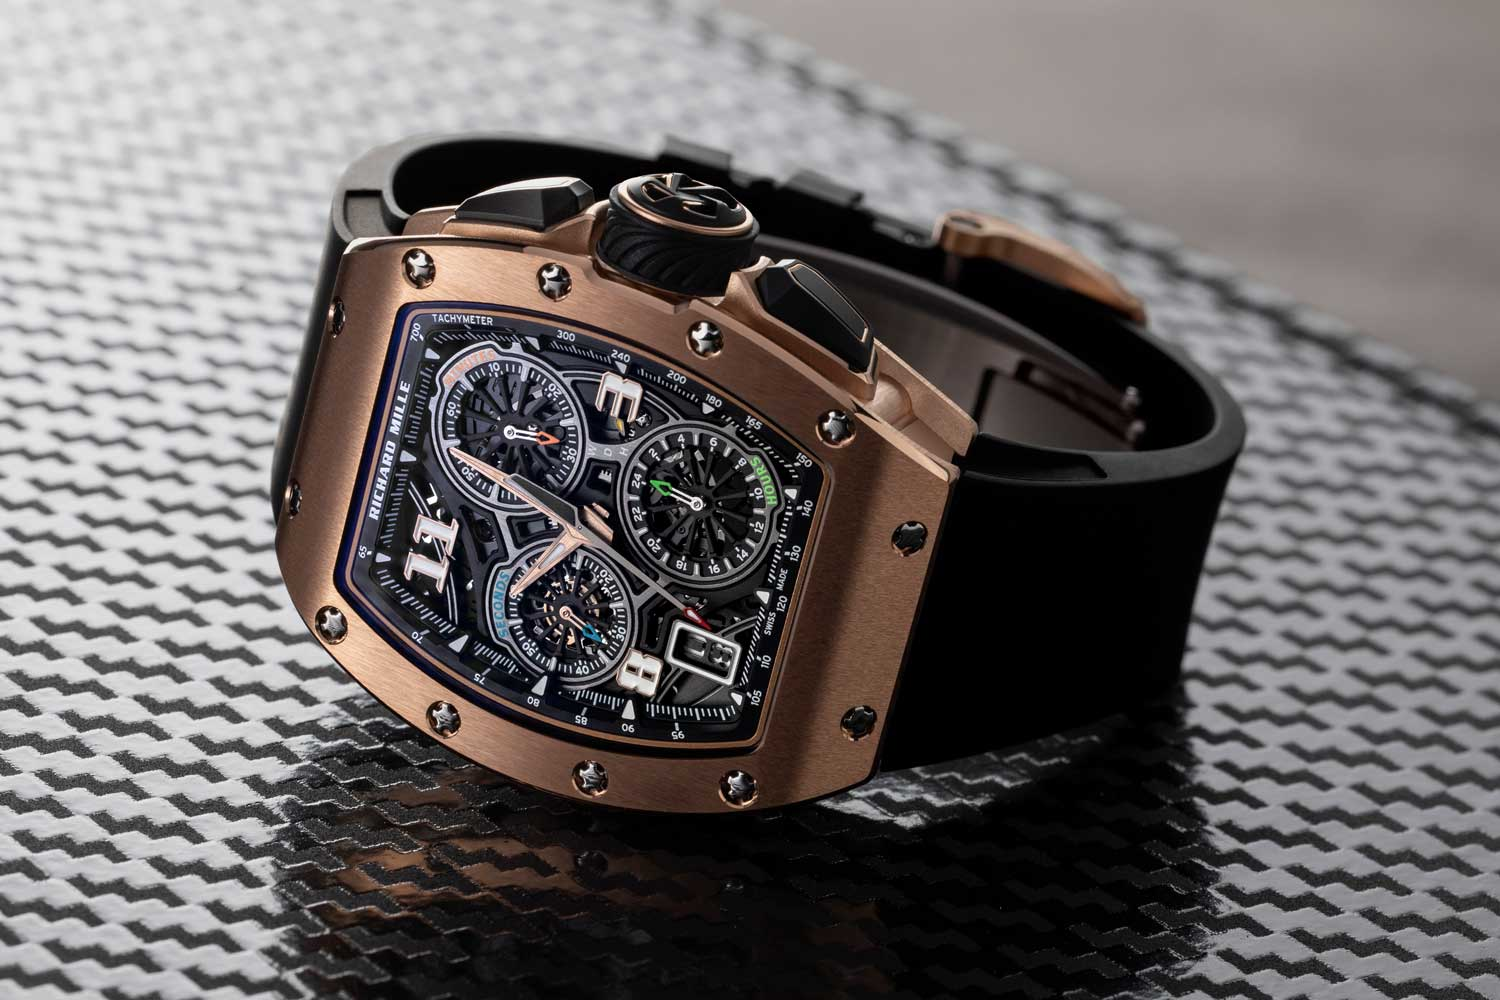 Launched in late 2020, the RM 72-01 looks like your typical hyper dynamic Richard Mille watch that radiates futurist machine tech energy from 100 meters (©Revolution)